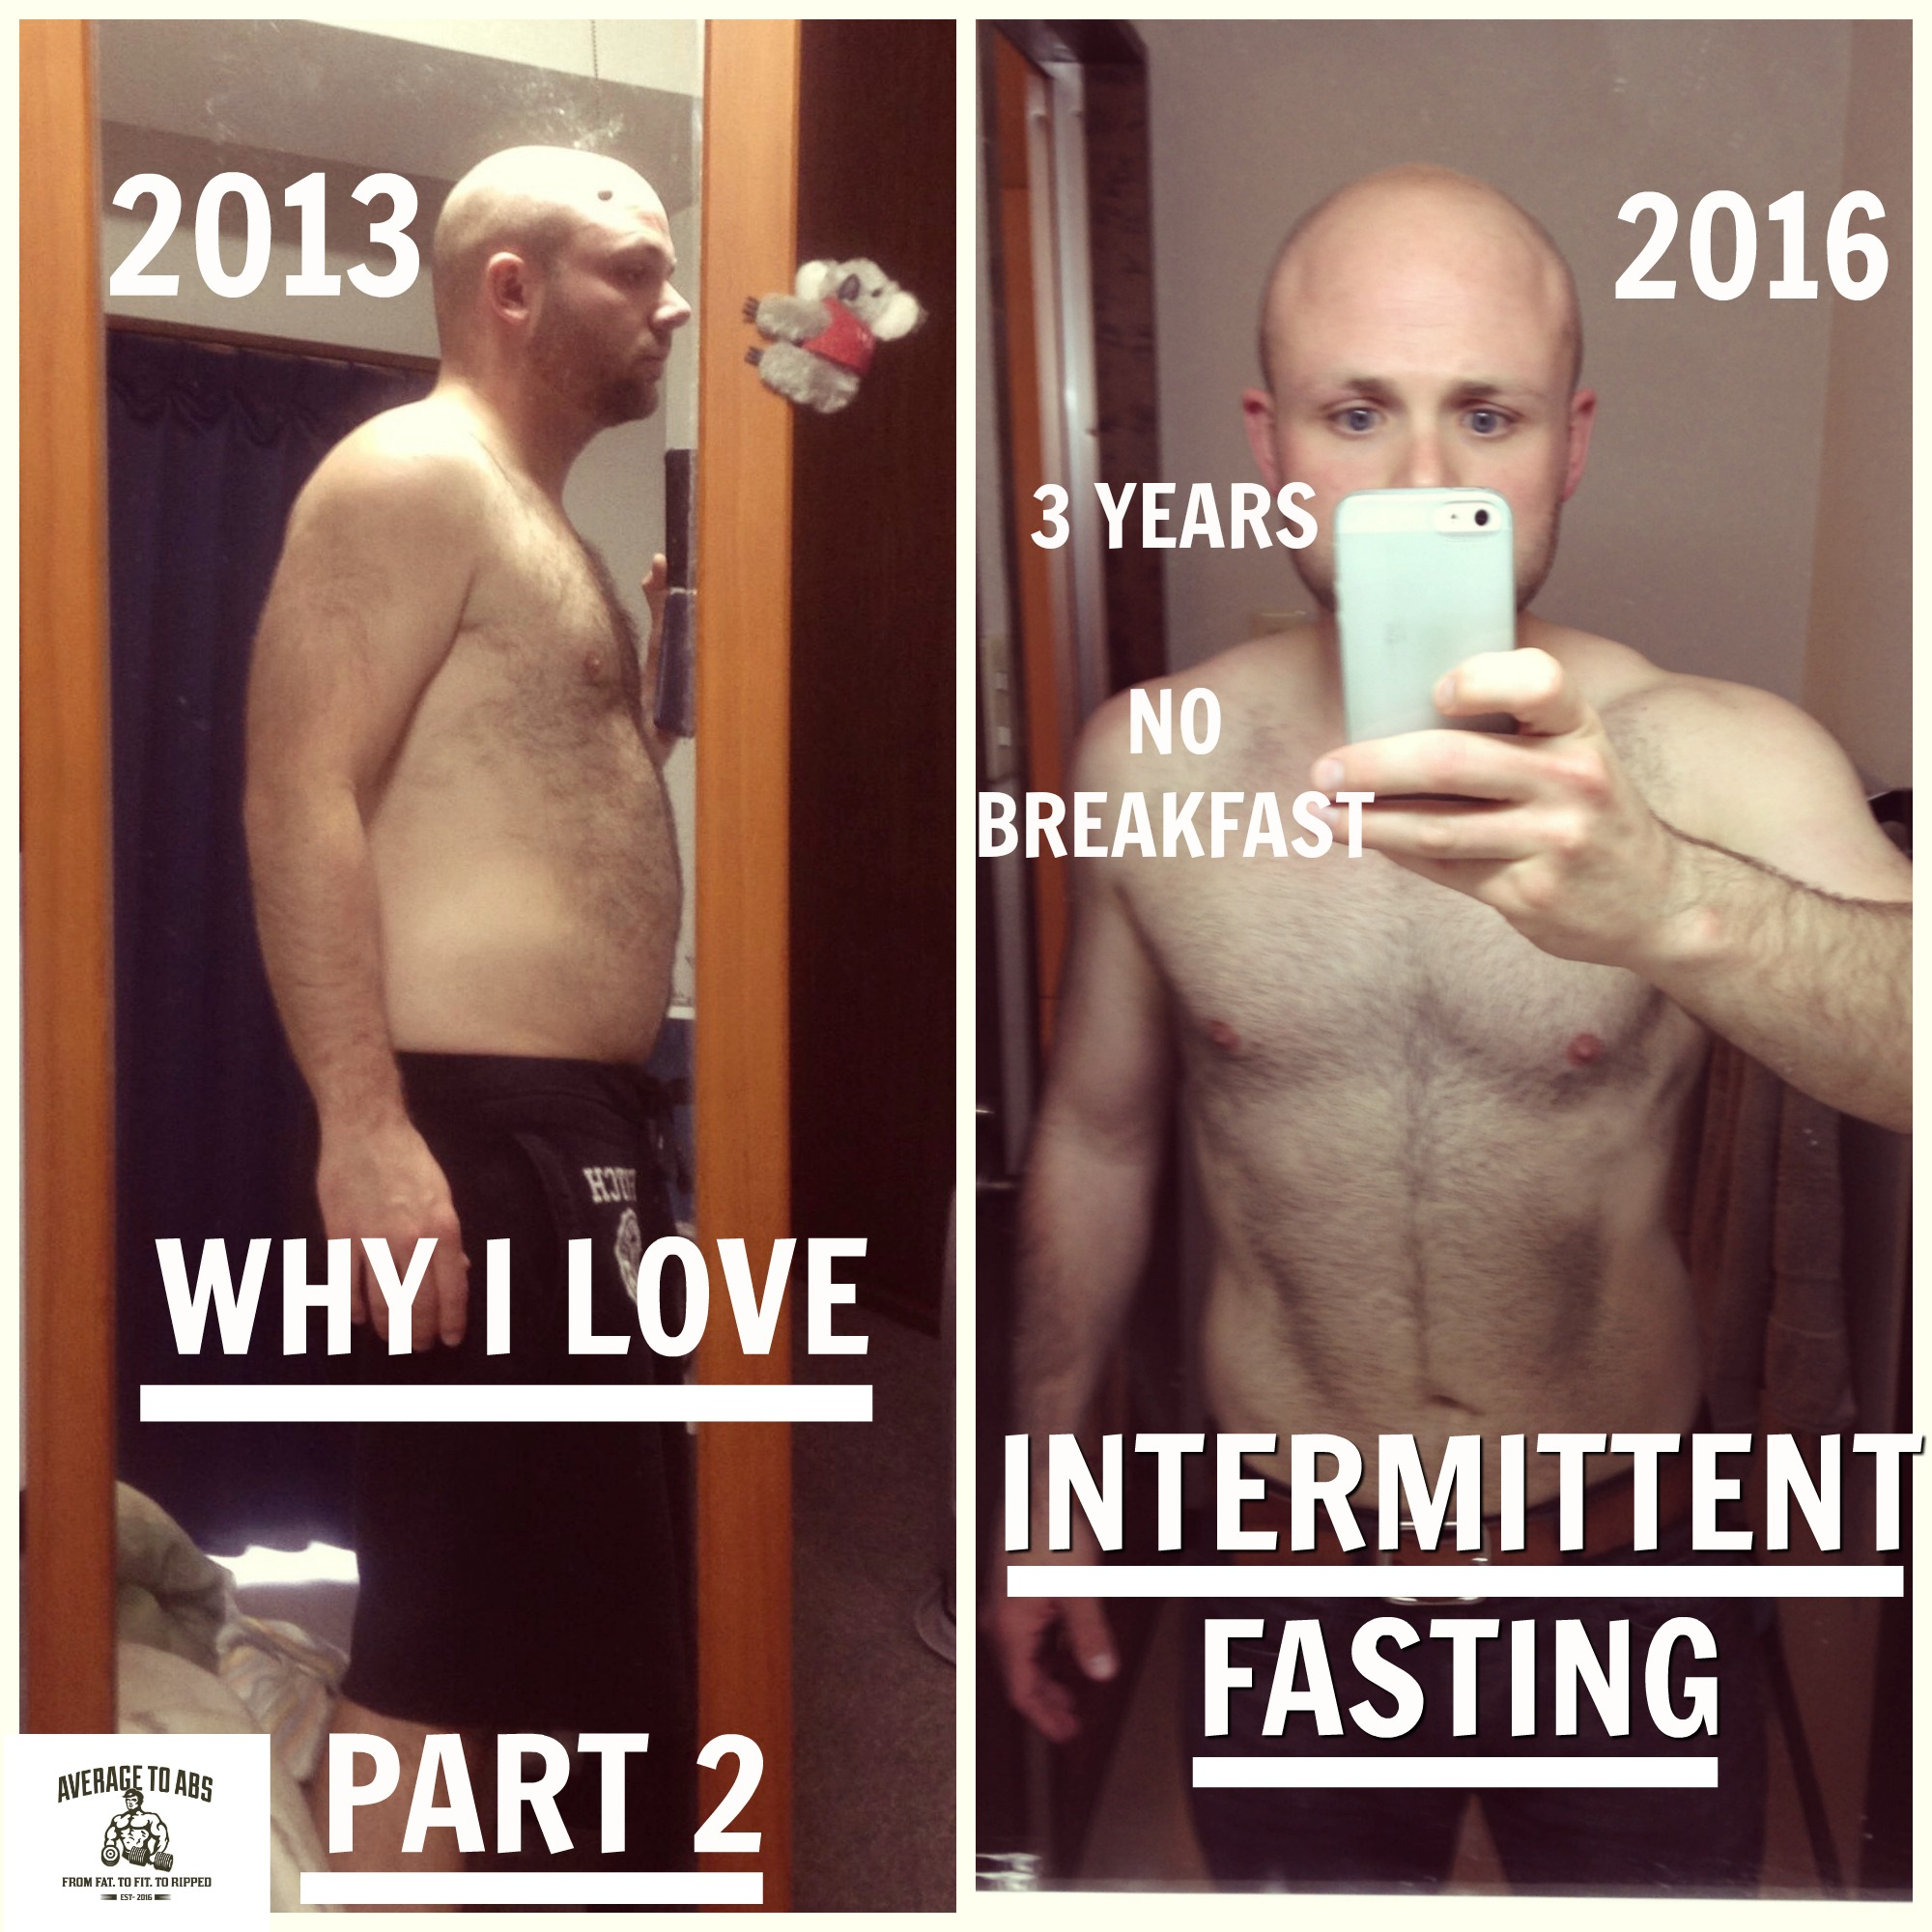 Why I Love Intermittent Fasting